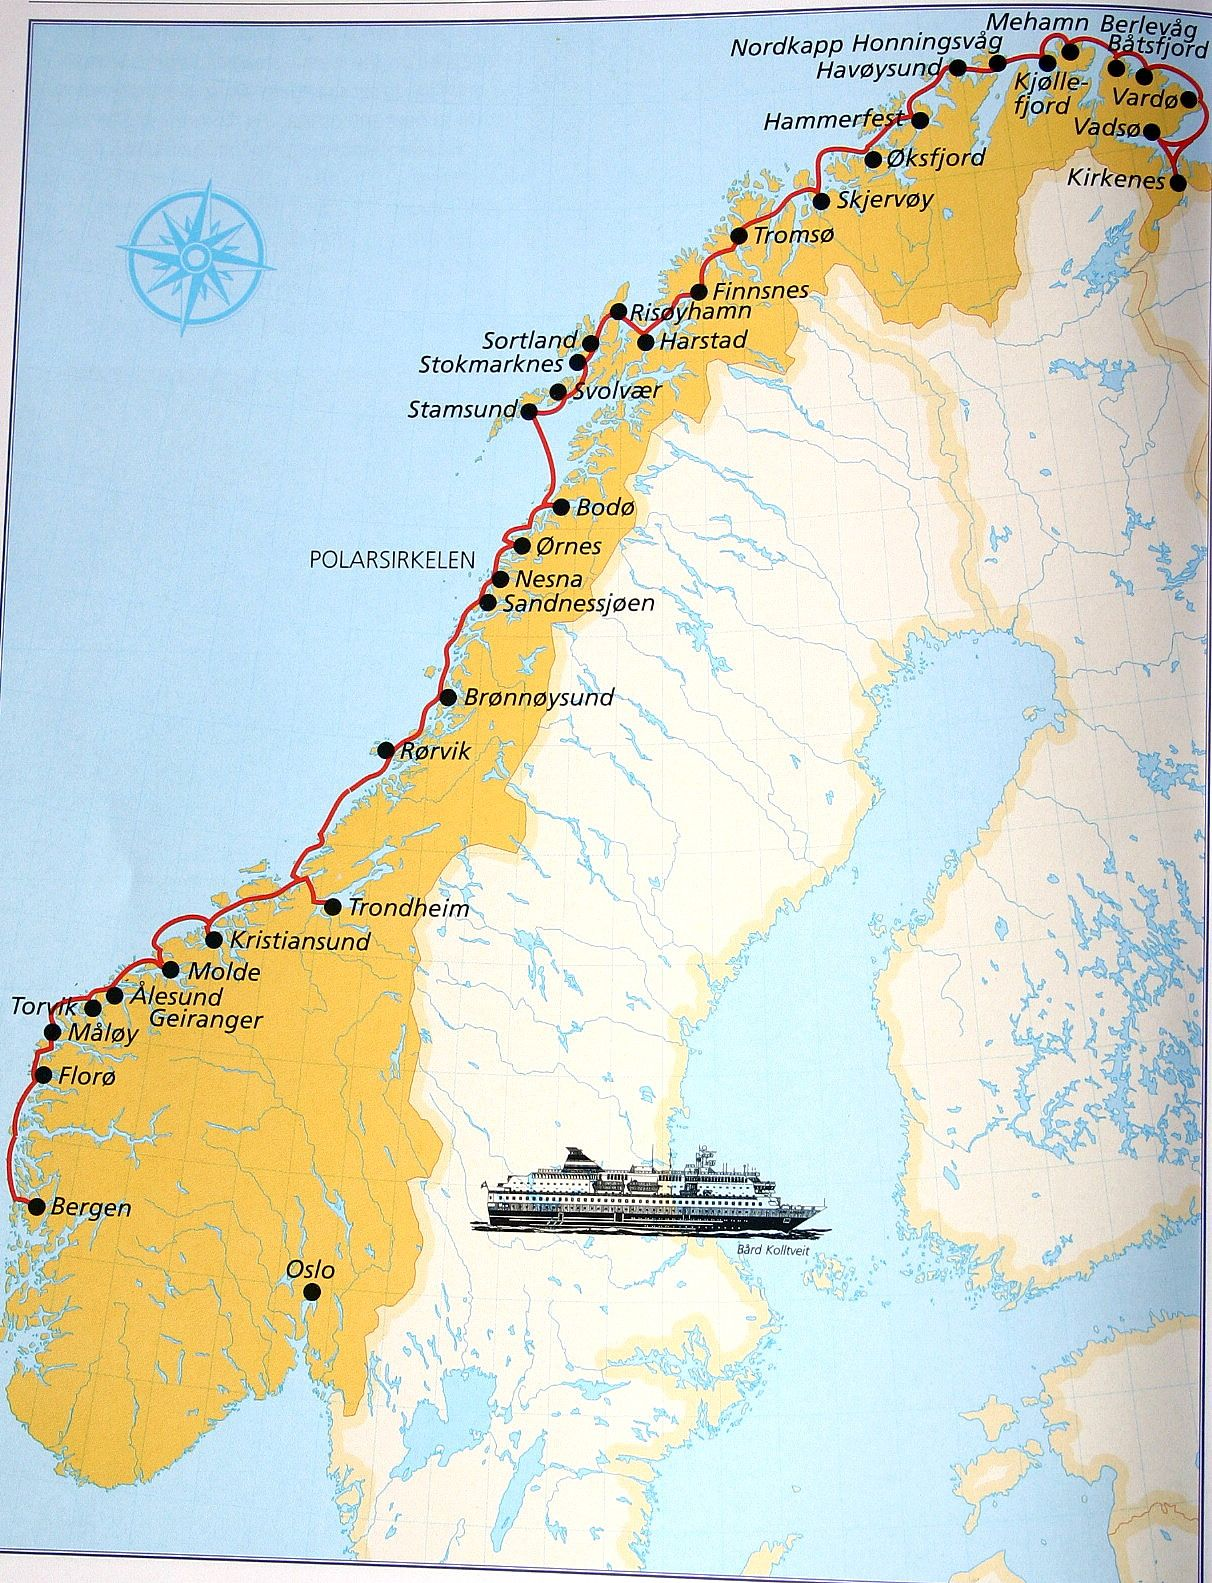 Map of the Norway Coast visited by Hurtigruten ships Nor